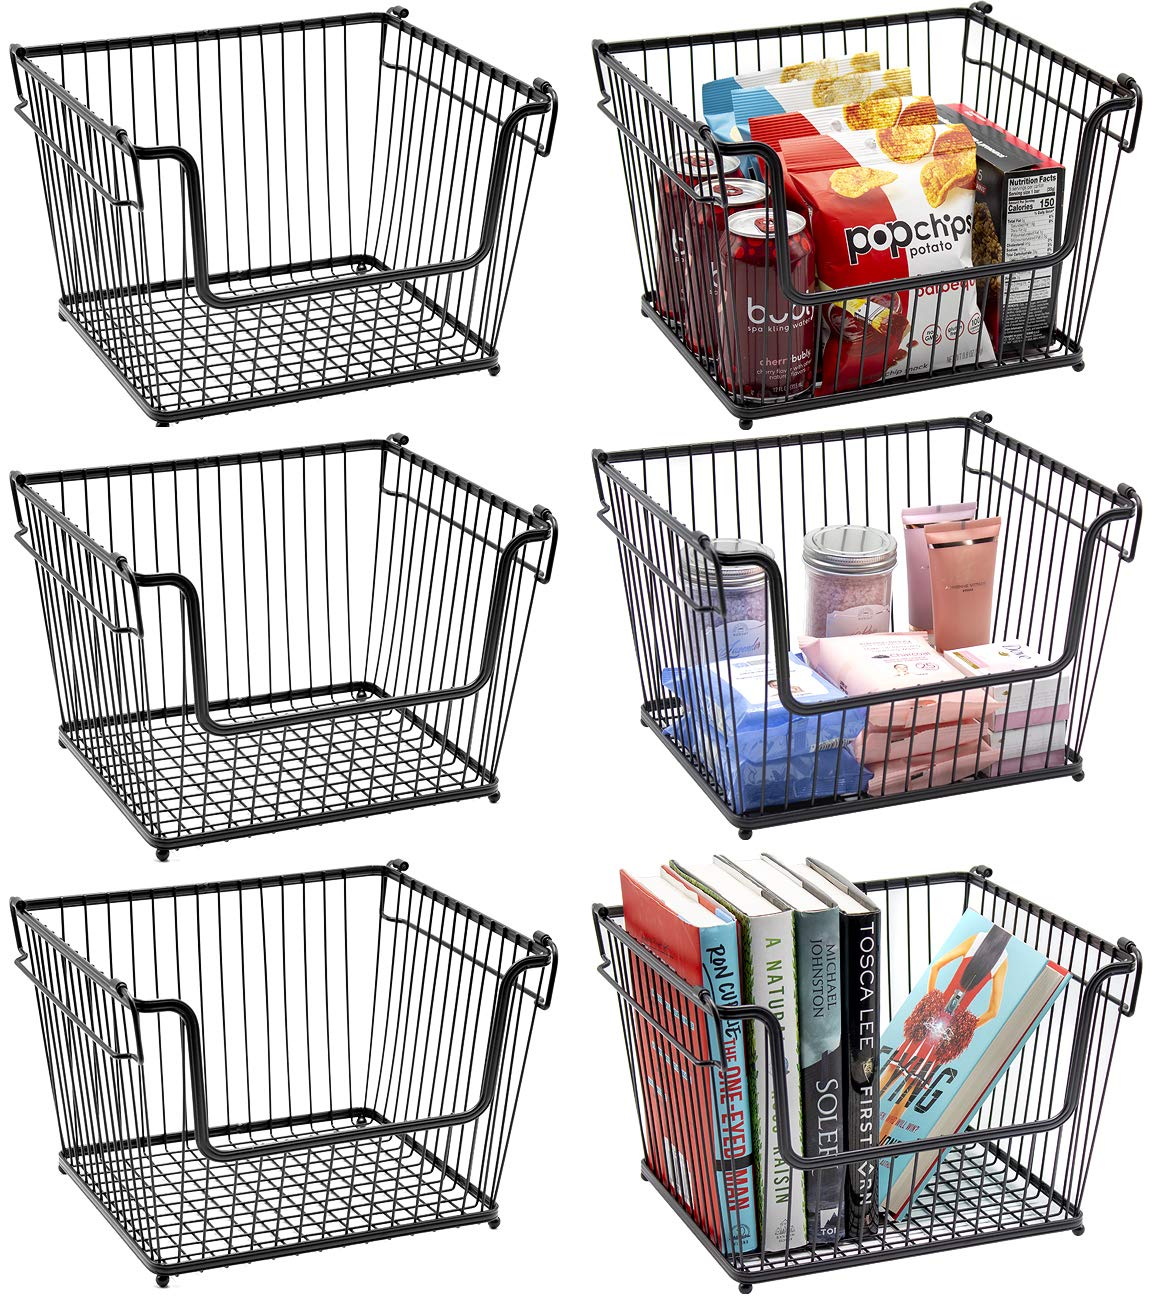 Eng Free Shipping! Made By Mech Heaviest Duty Stainless Pellet Basket 12x6x6